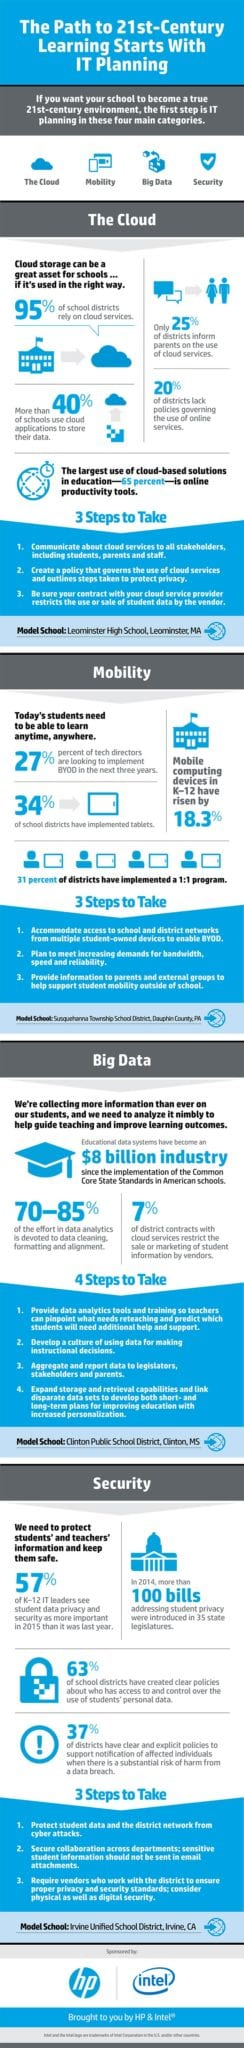 21st Century Learning Infographic